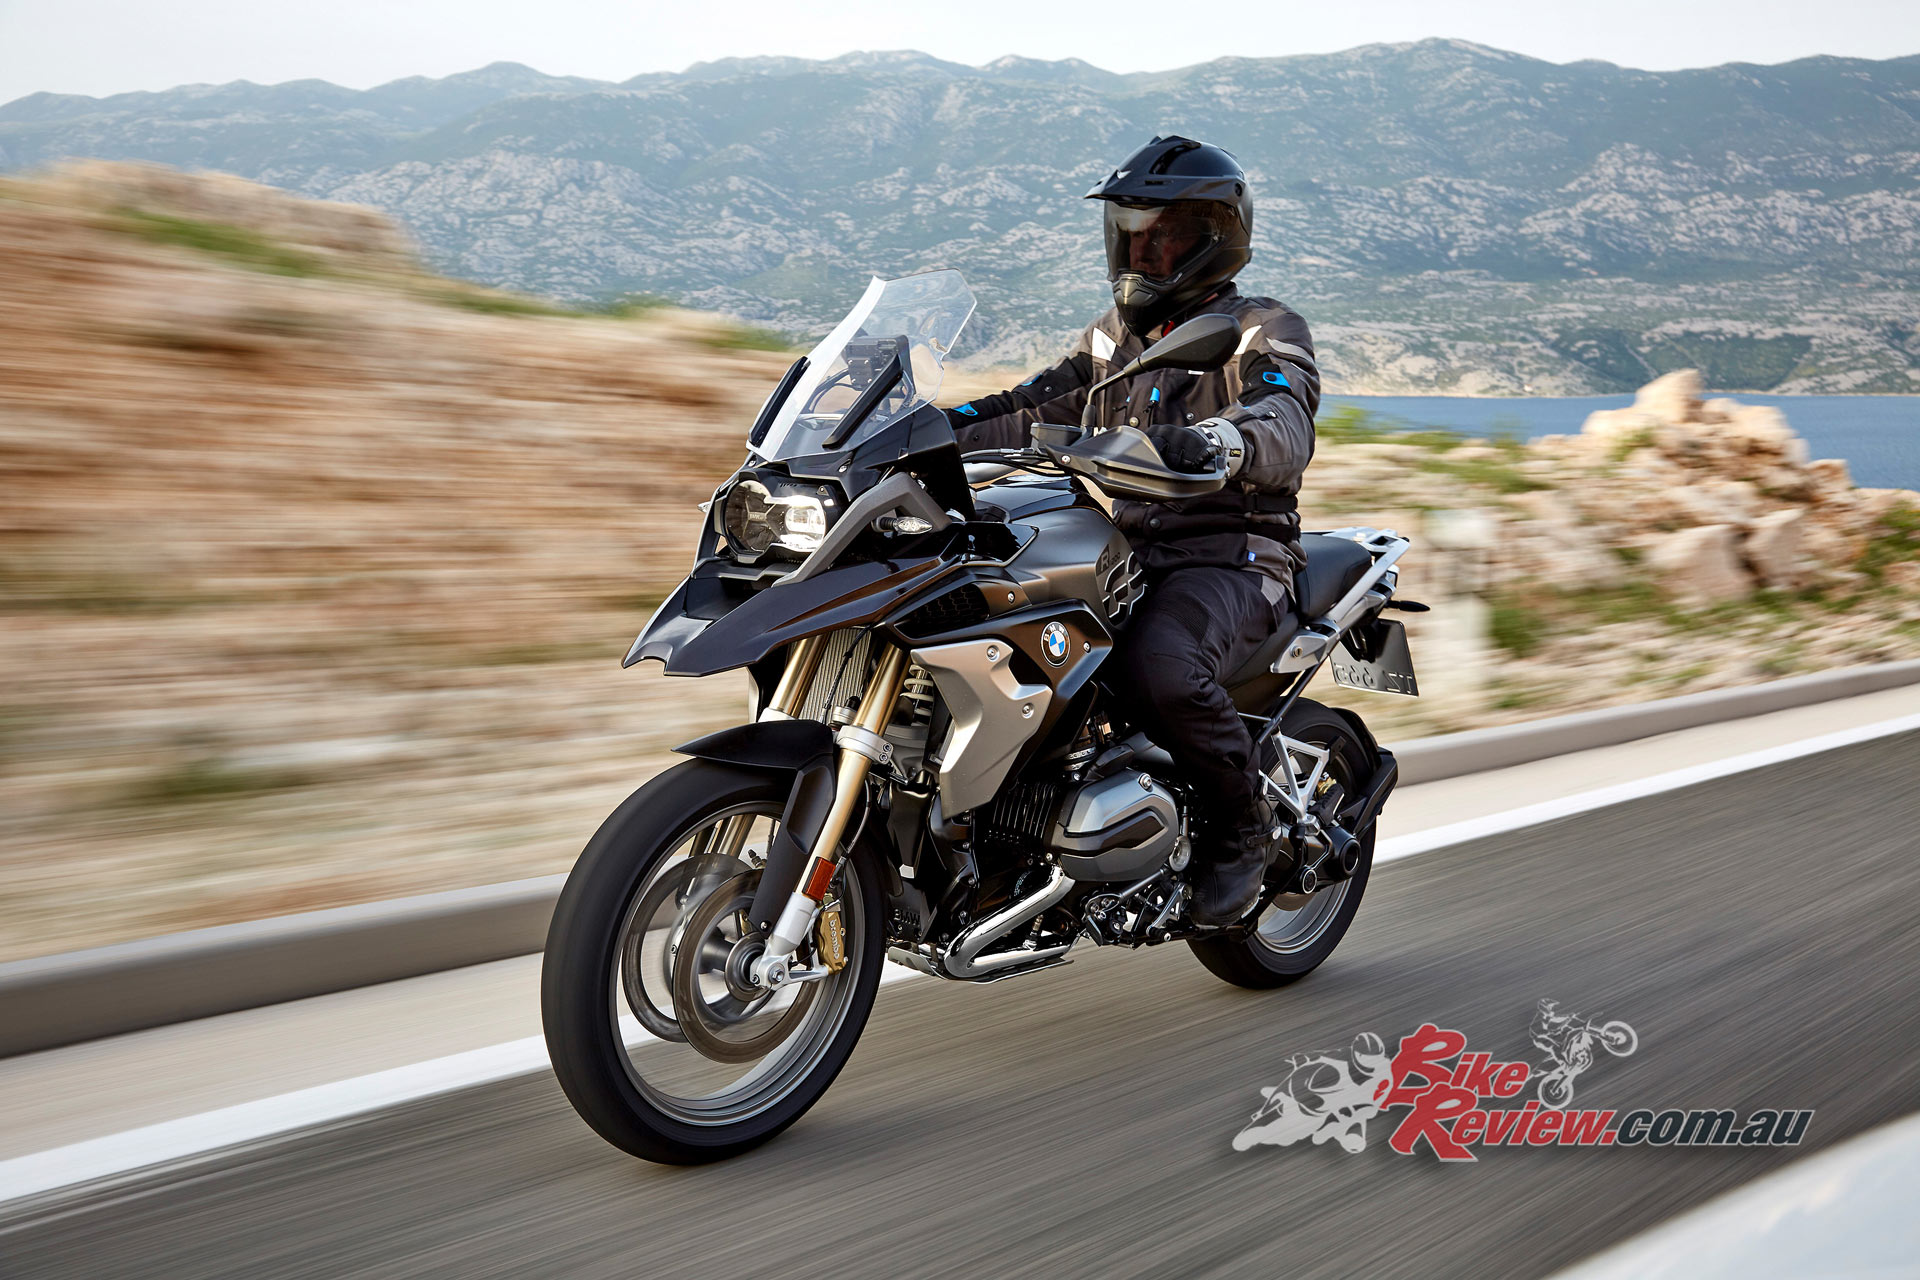 2017 Bmw R 1200 Gs Unveiled At Eicma Bike Review